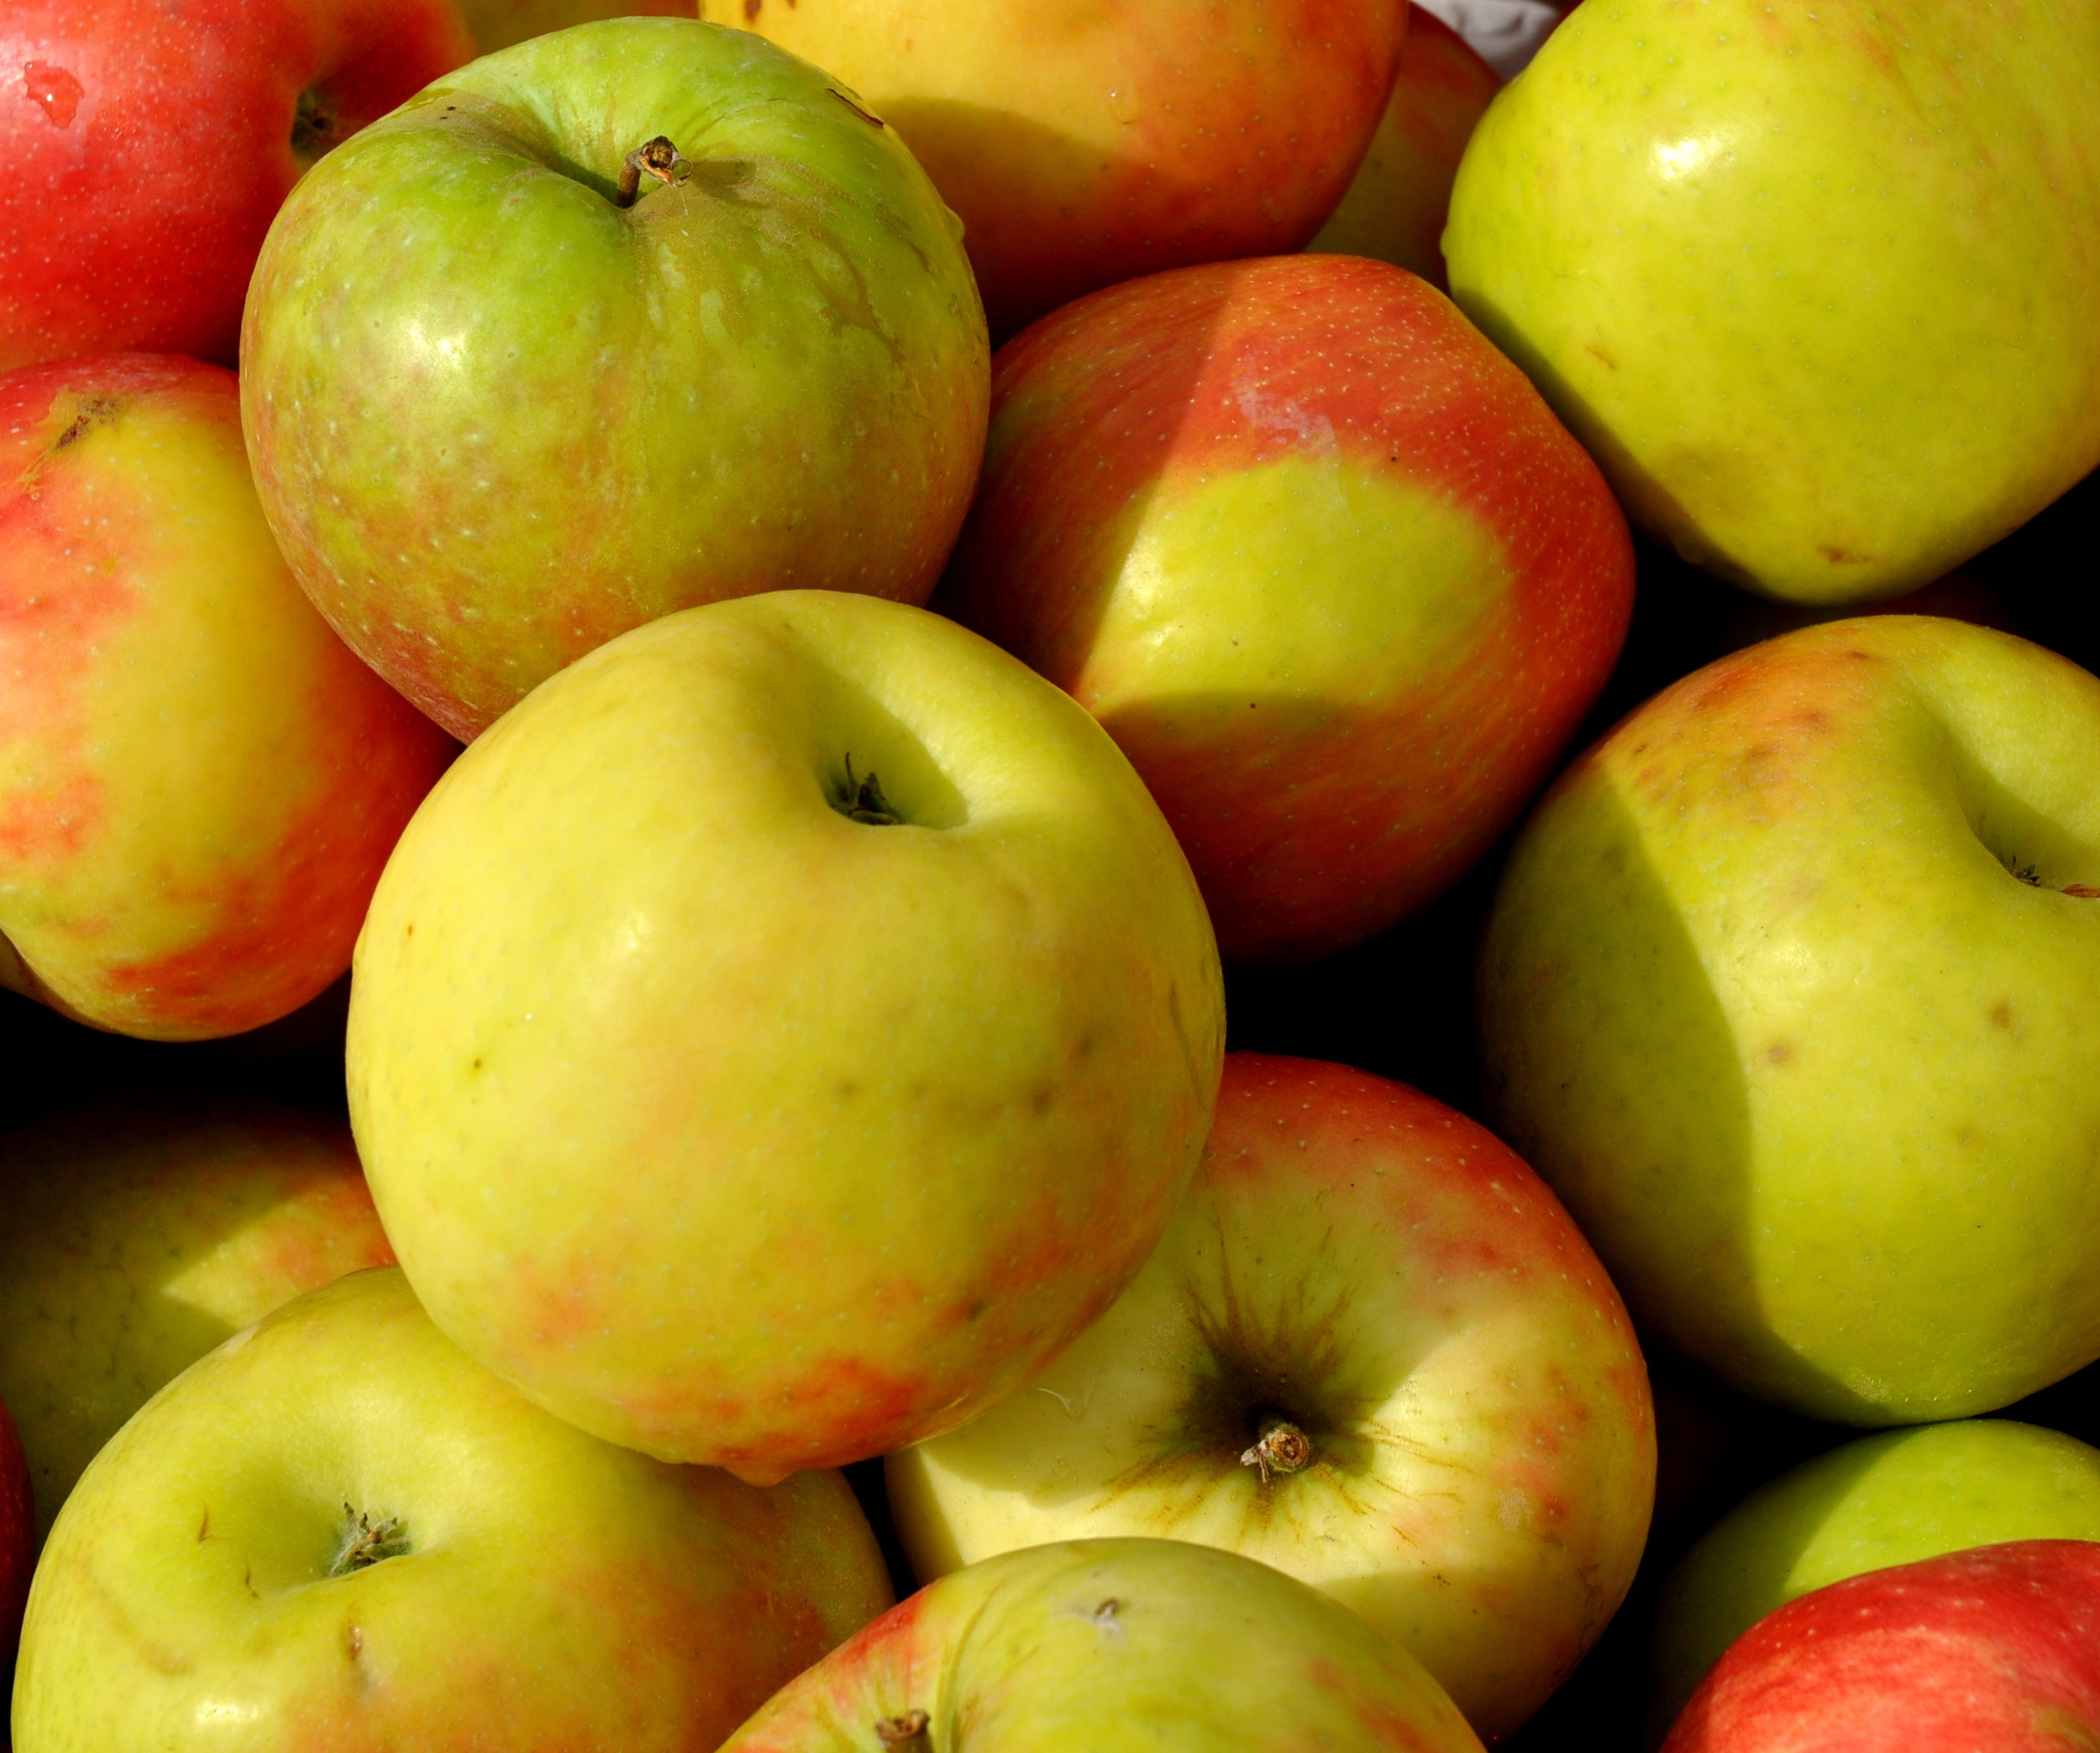 Honey crisp apples from ACMA Mission Orchards. Photo copyright 2013 by Zachary D. Lyons.